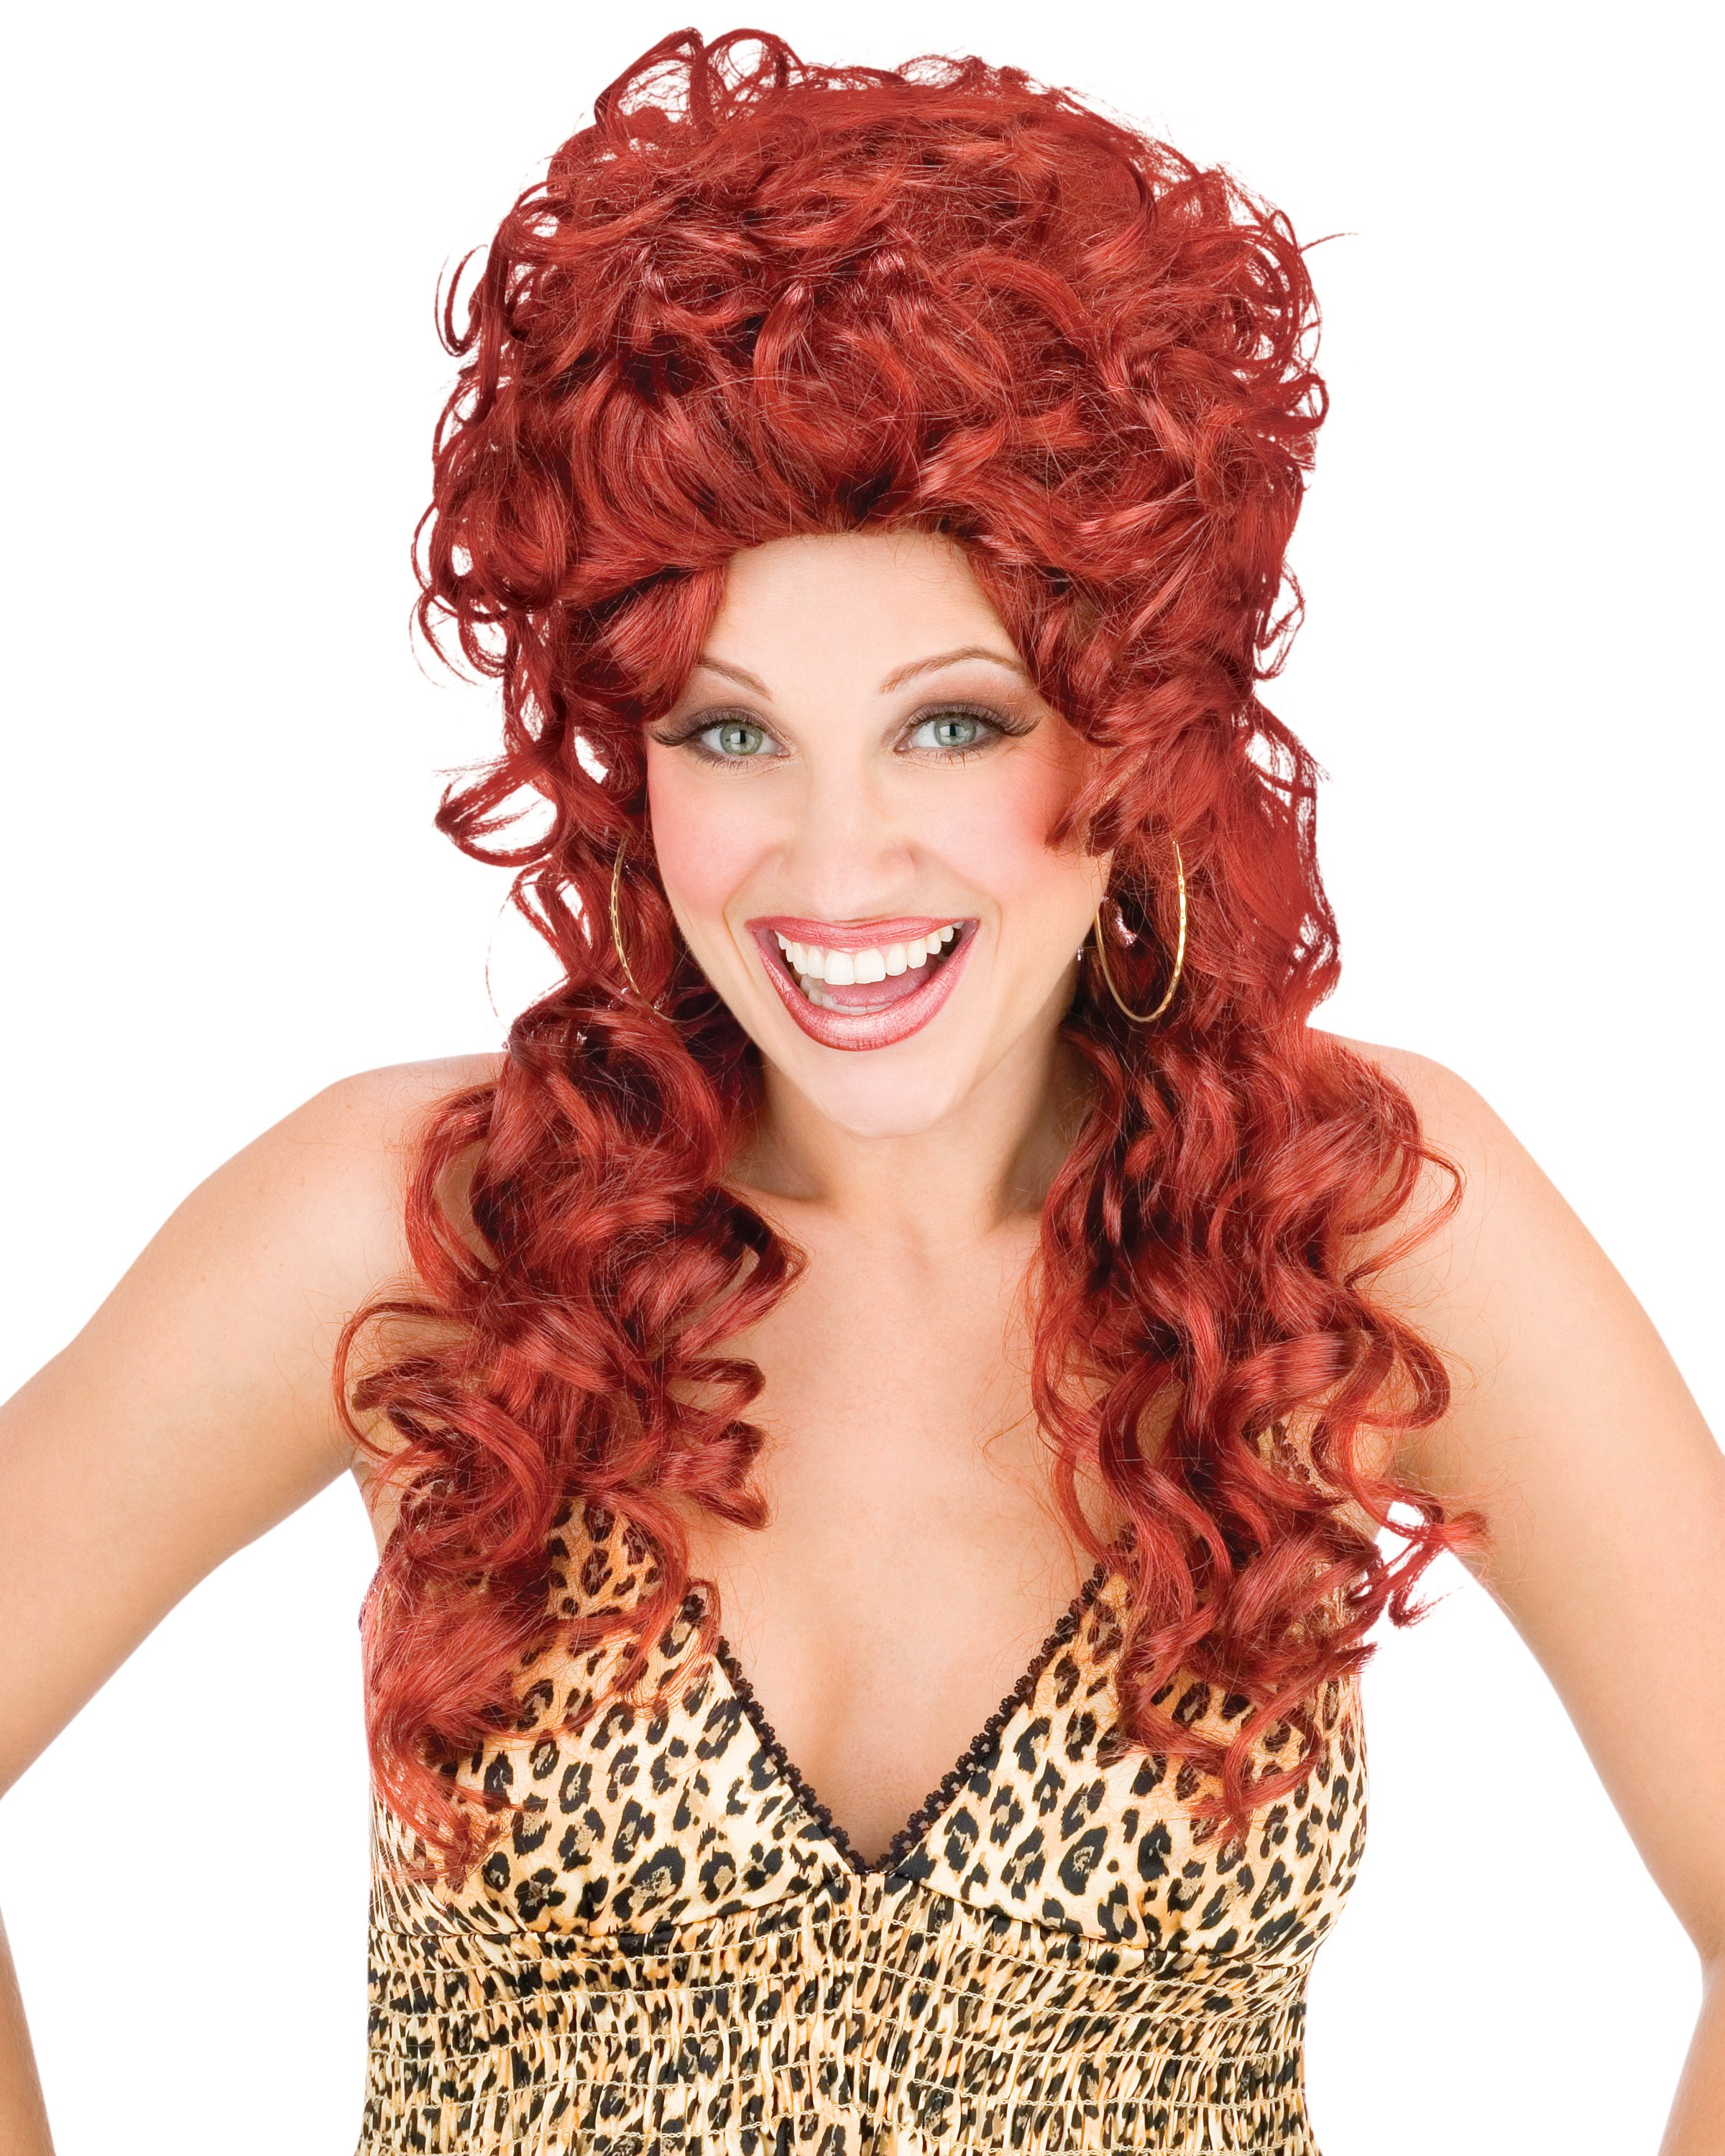 Trailer Park Trophy Wife Auburn Wig